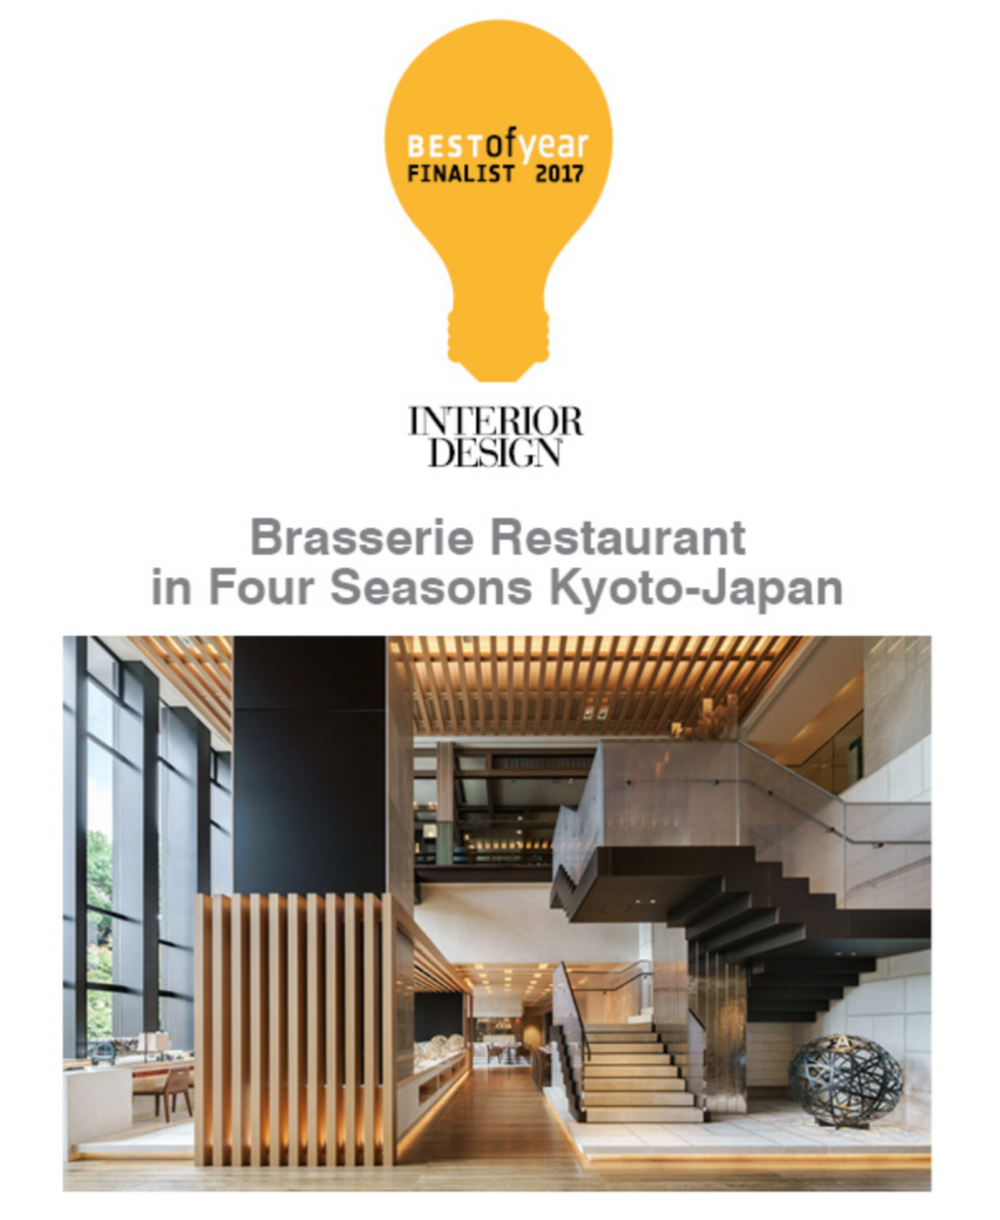 【Award】Brasserie Restaurant Nominated Finalist for 2017 BoY Award  - Kokaistudios' restaurant project, Brasserie in Four Seasons Kyoto was nominated finalist for the